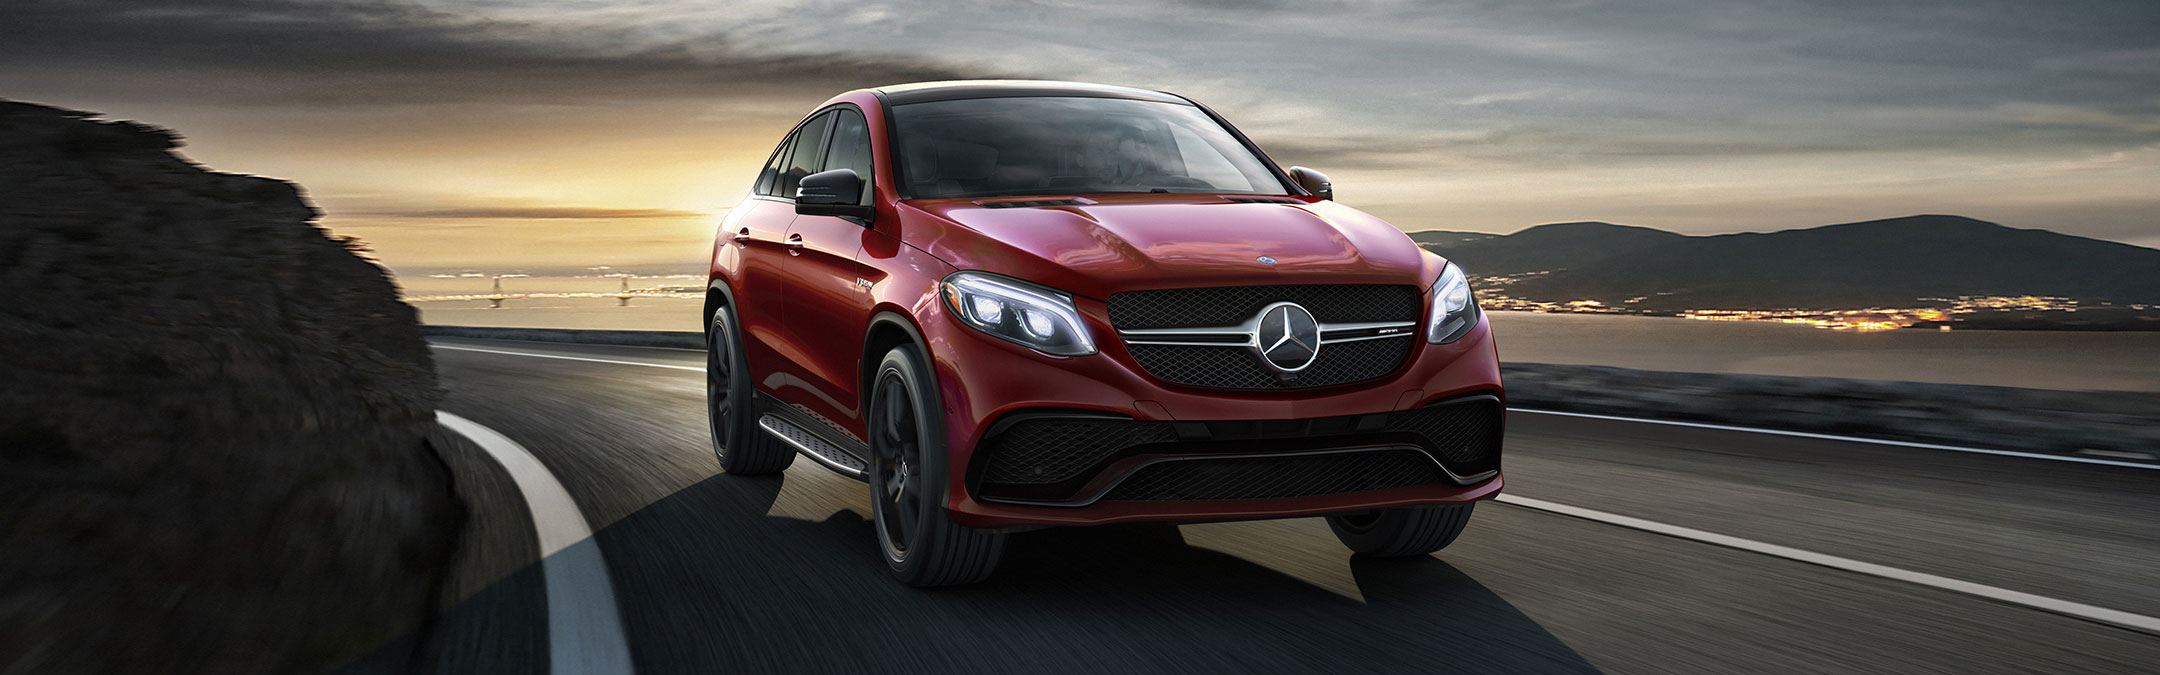 2018 Mercedes-AMG GLE 4MATIC Coupe